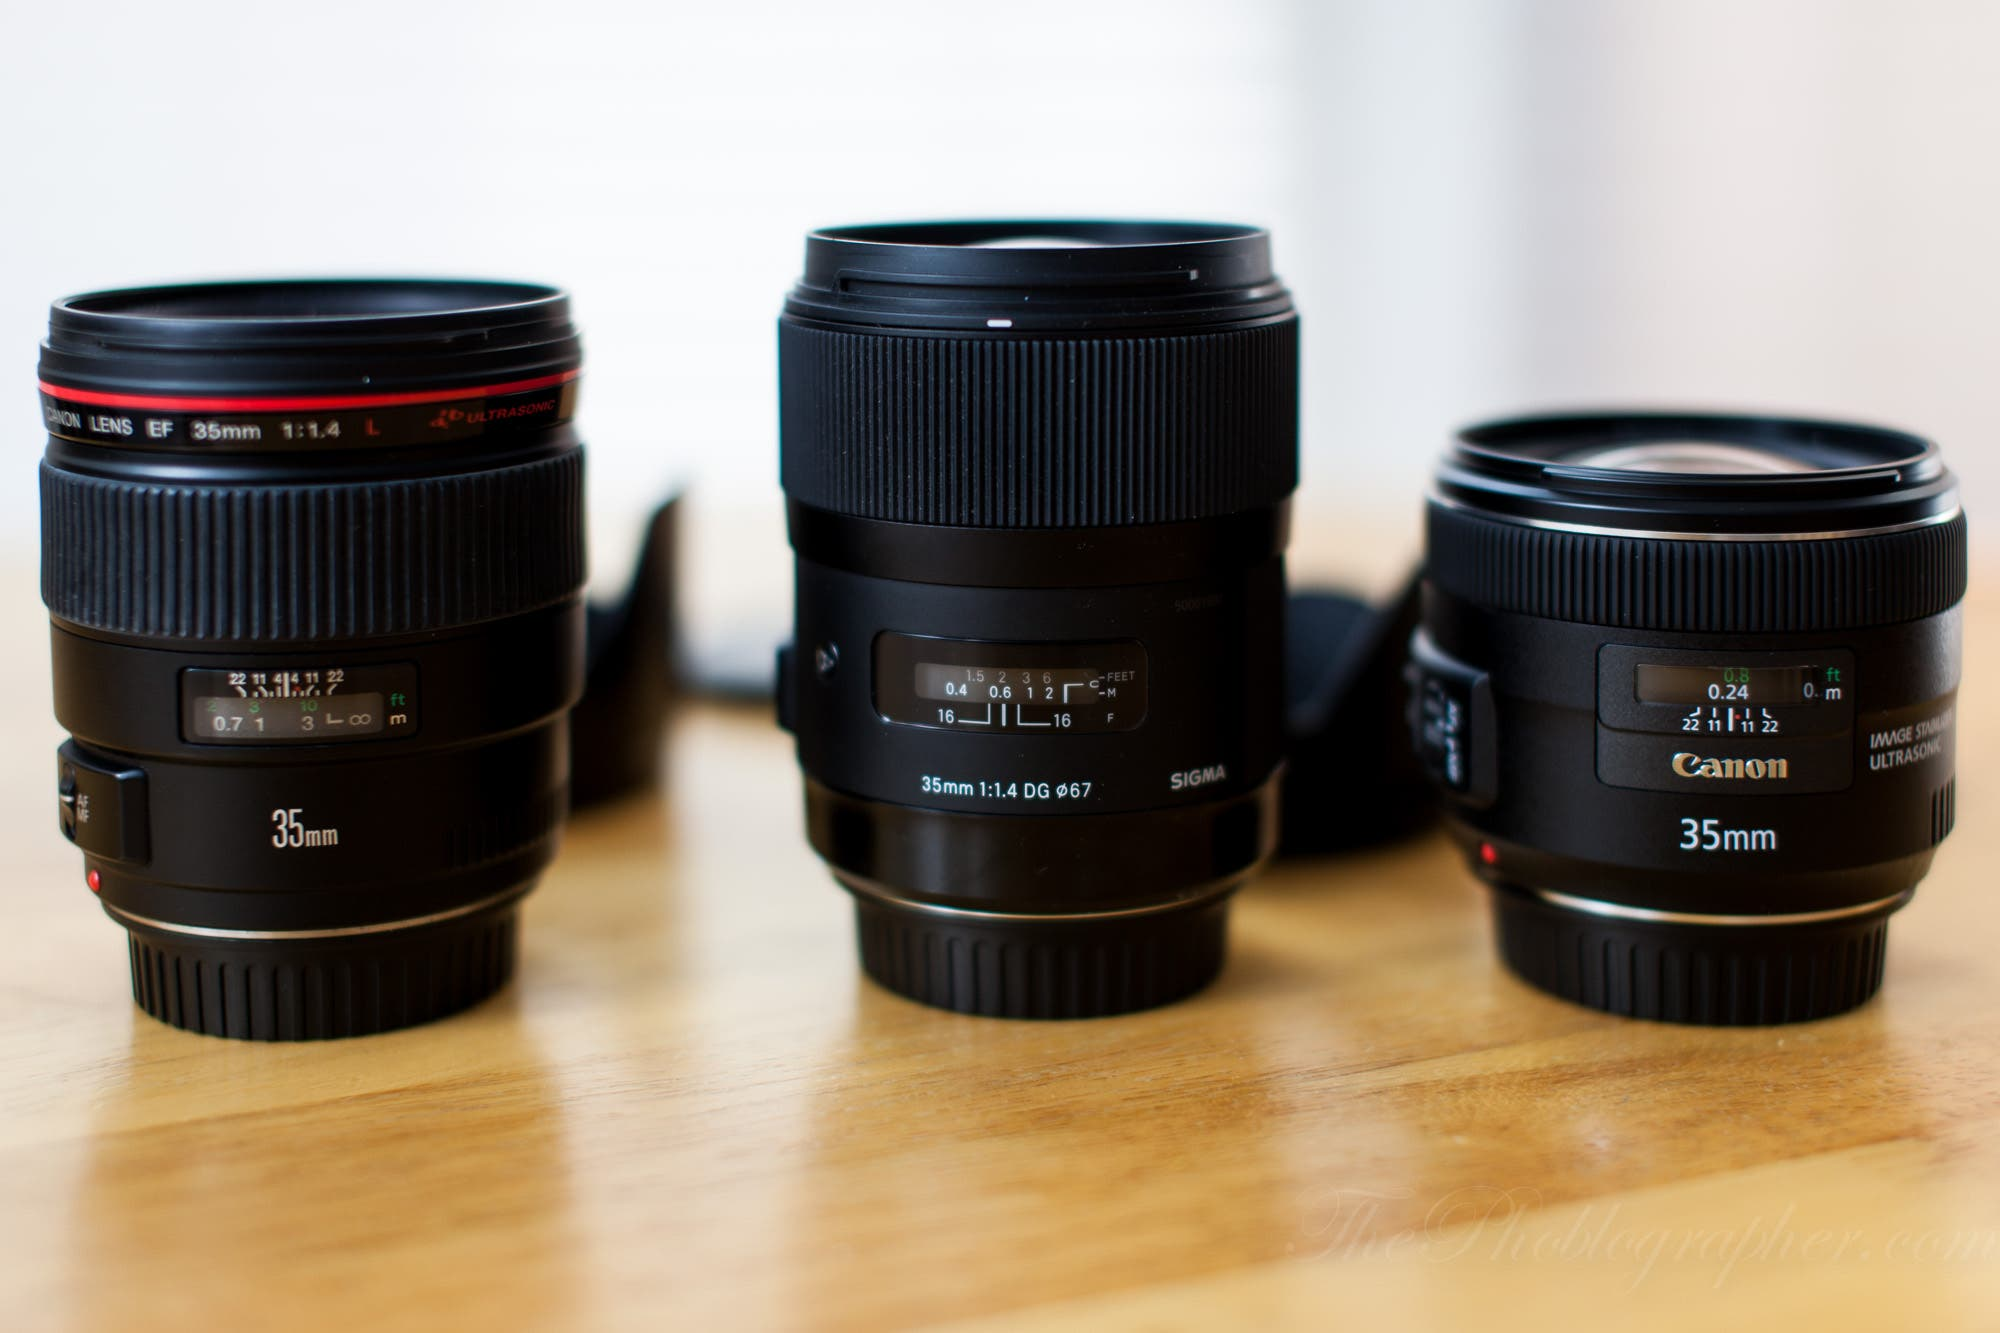 Lens Comparison: Canon 35mm f2 IS vs Sigma 35mm f1.4 DG vs Canon 35mm f1.4 L